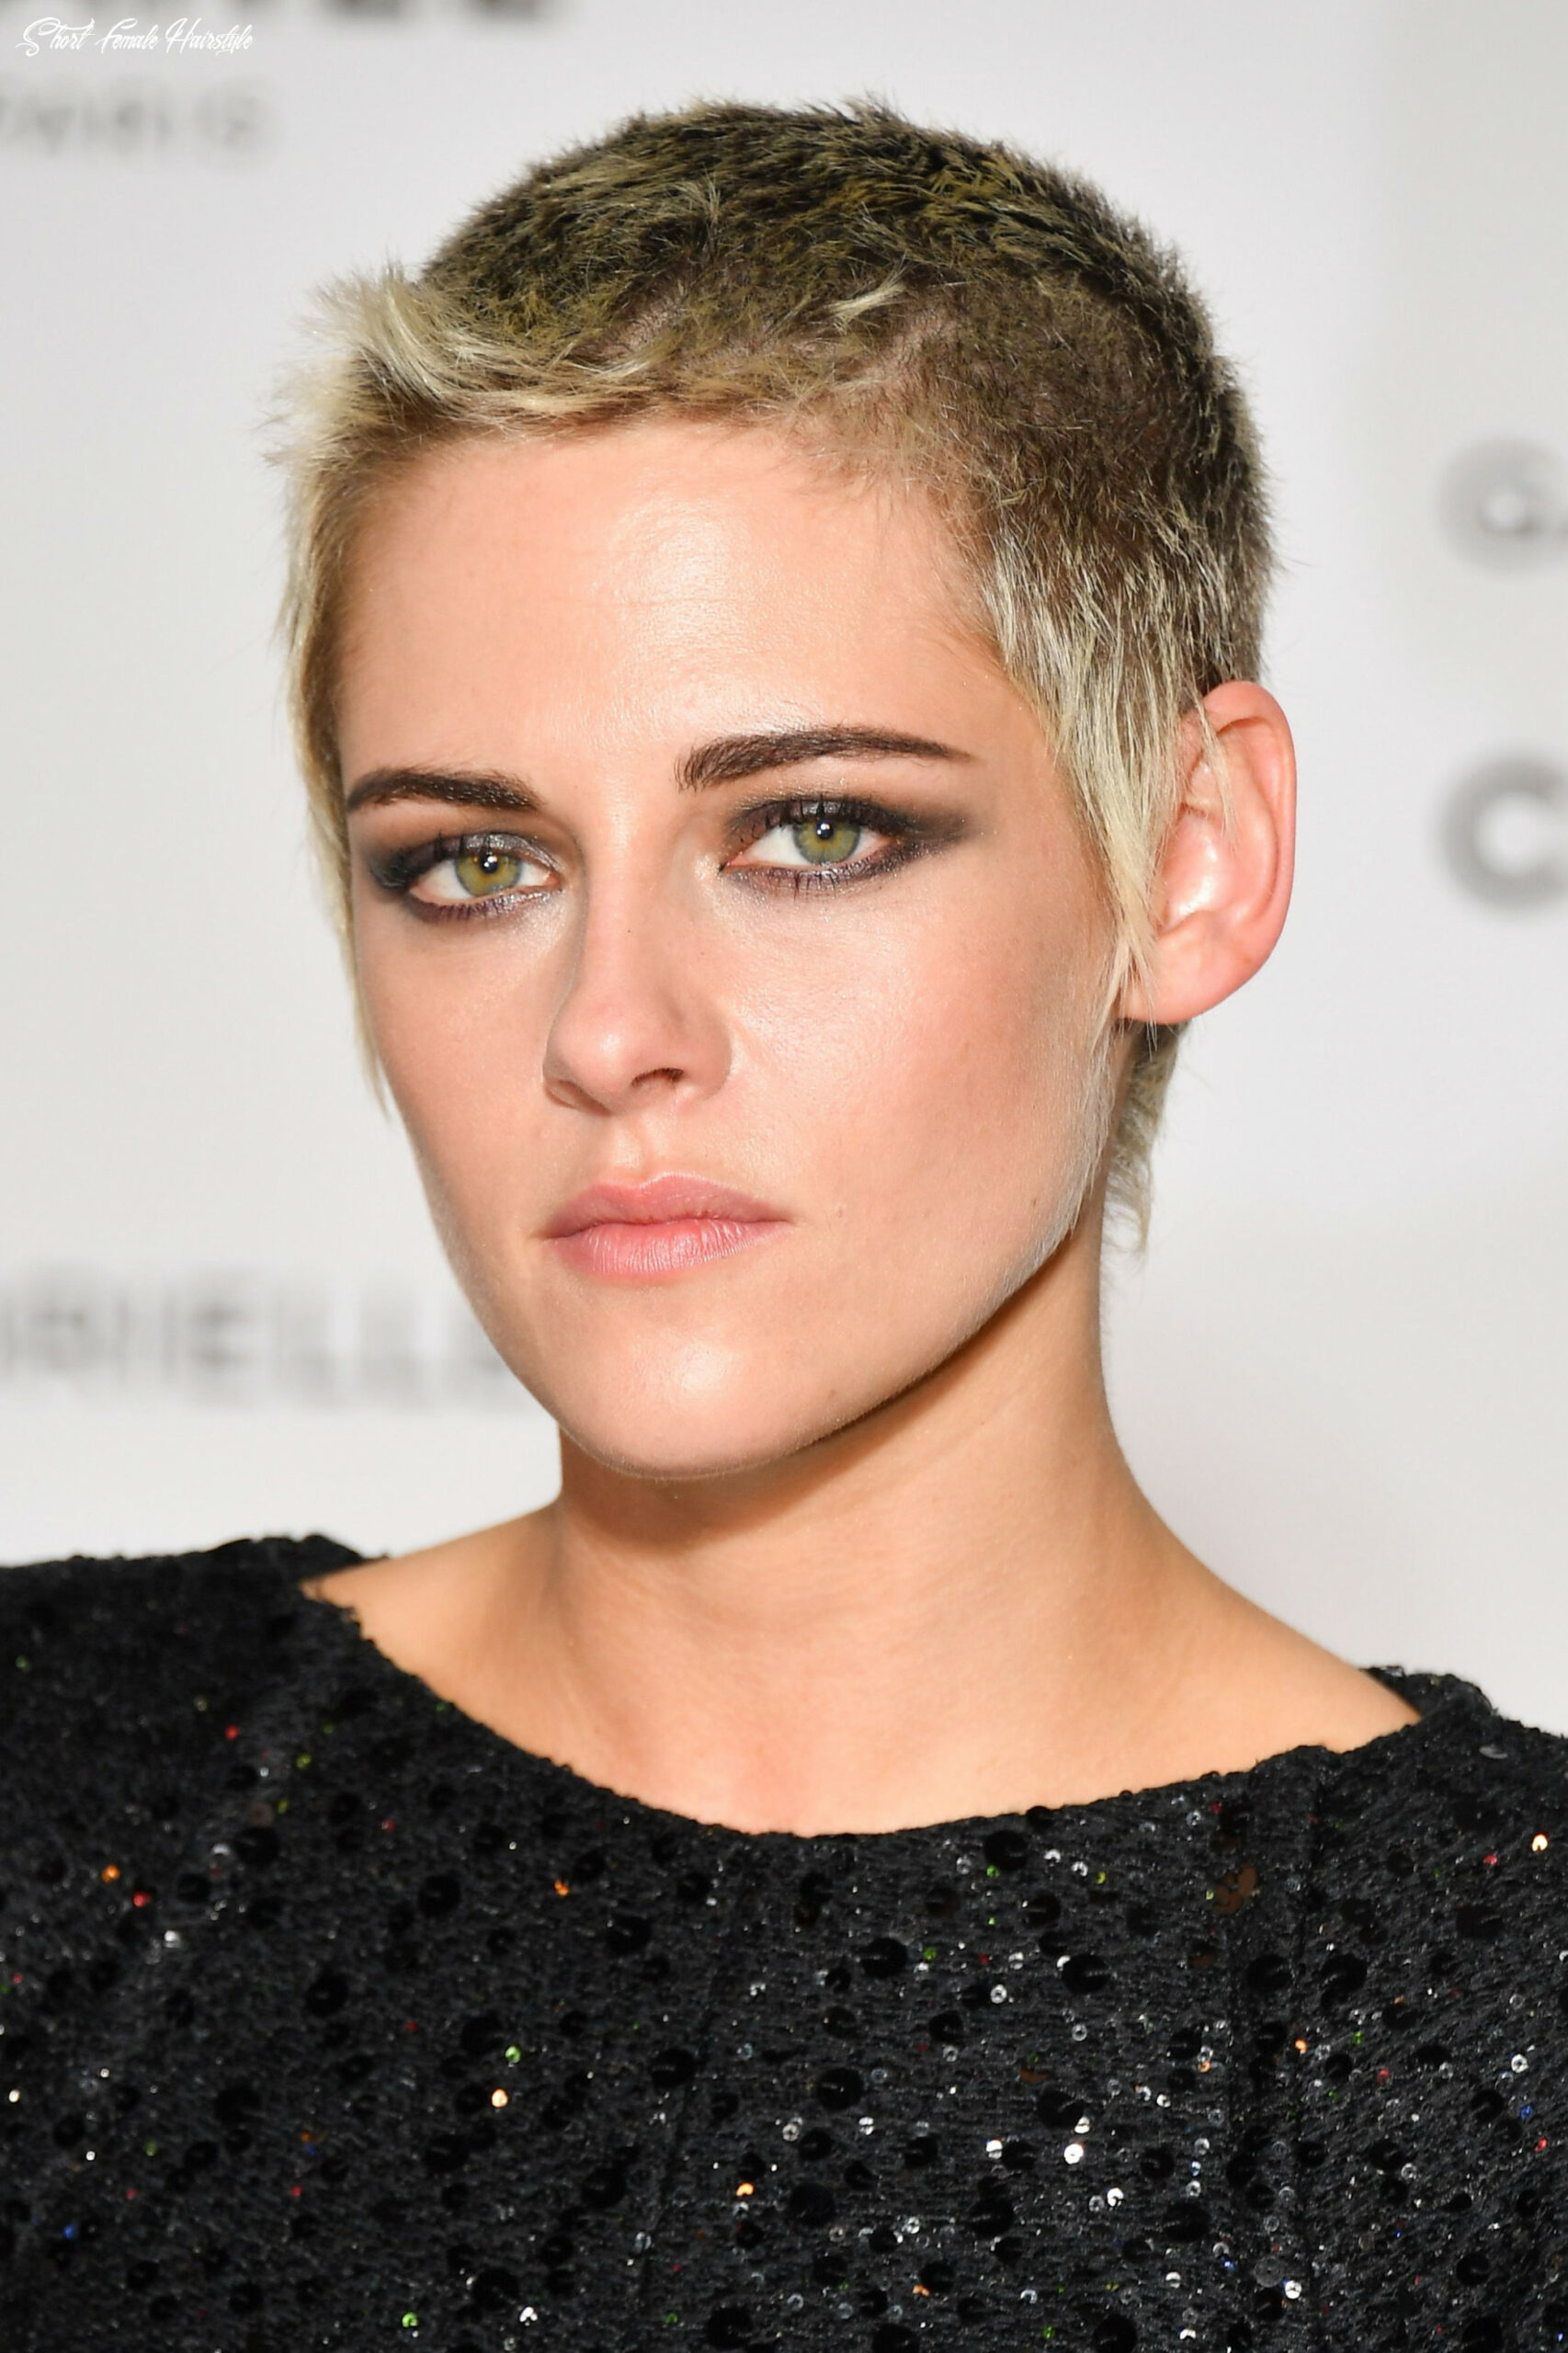 10 cute short hairstyles for women how to style short haircuts short female hairstyle